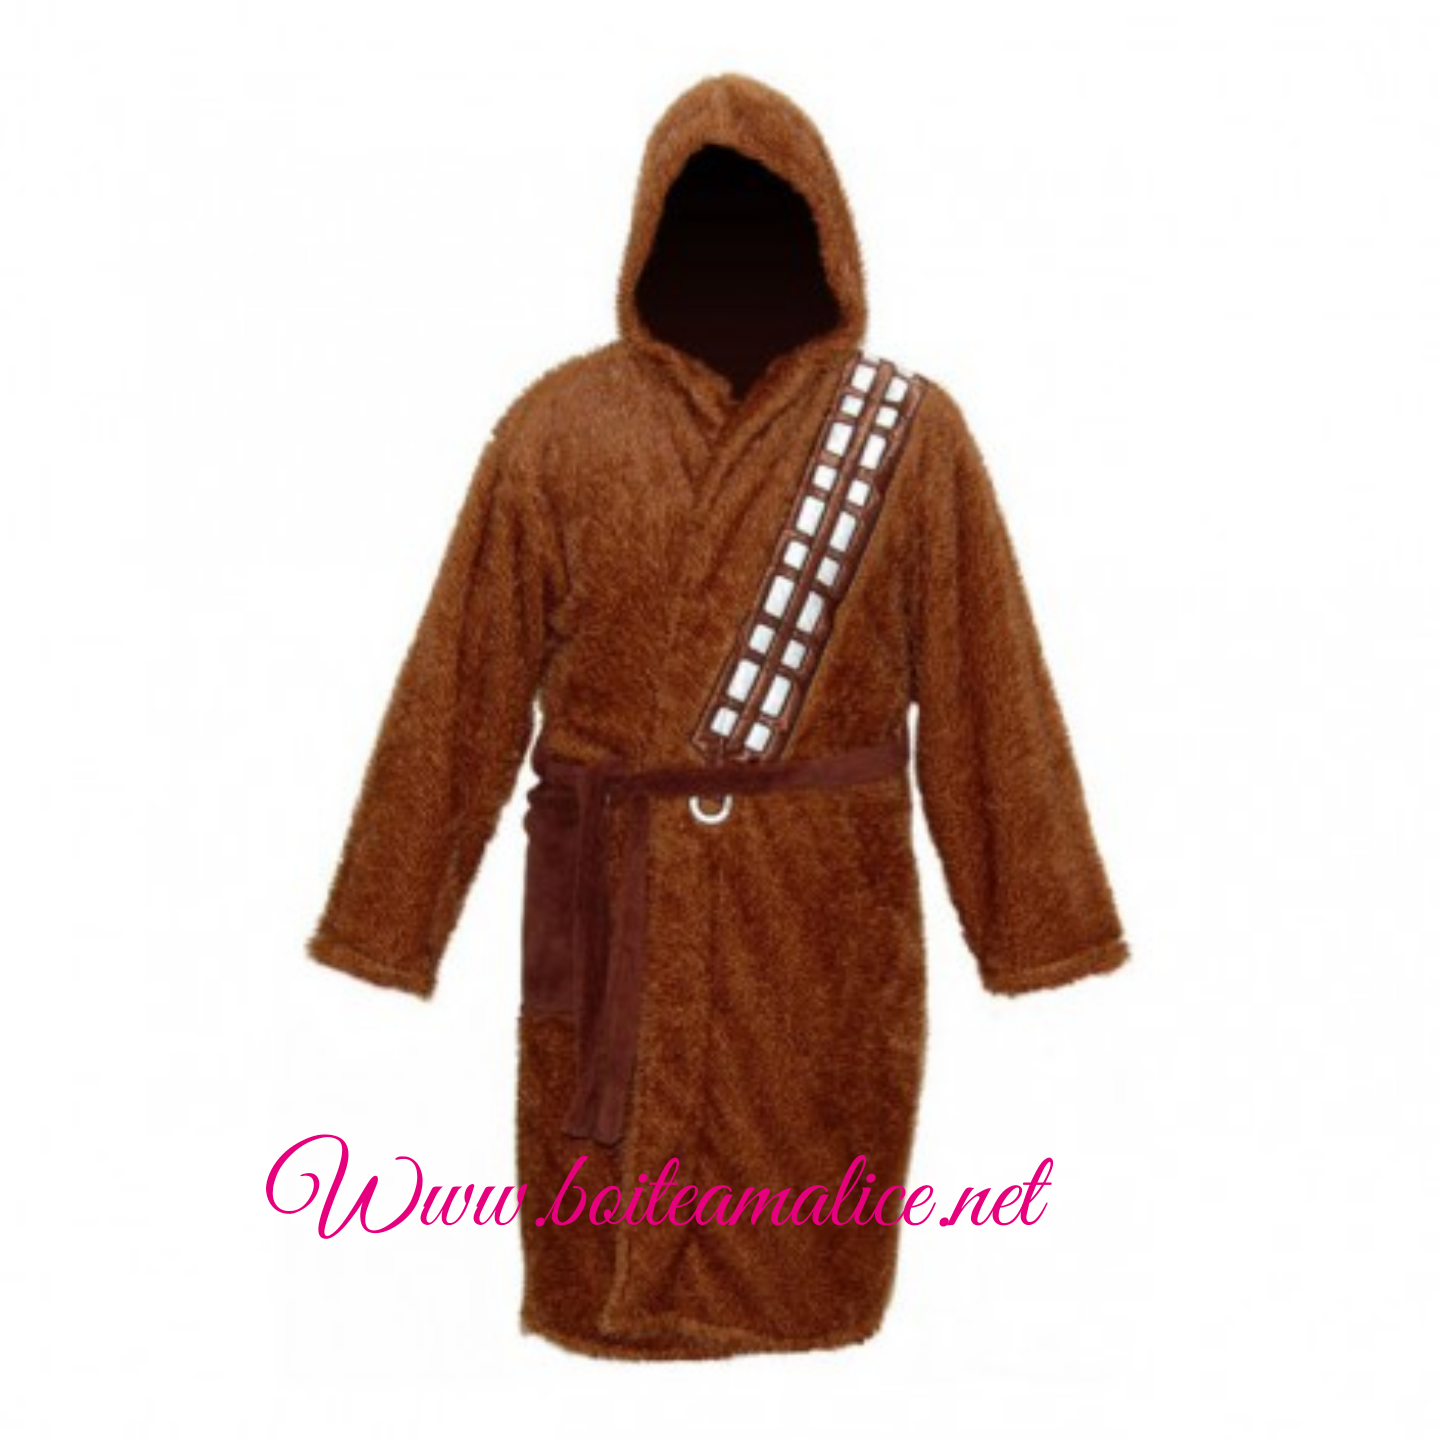 Peignoir star wars shewbacca